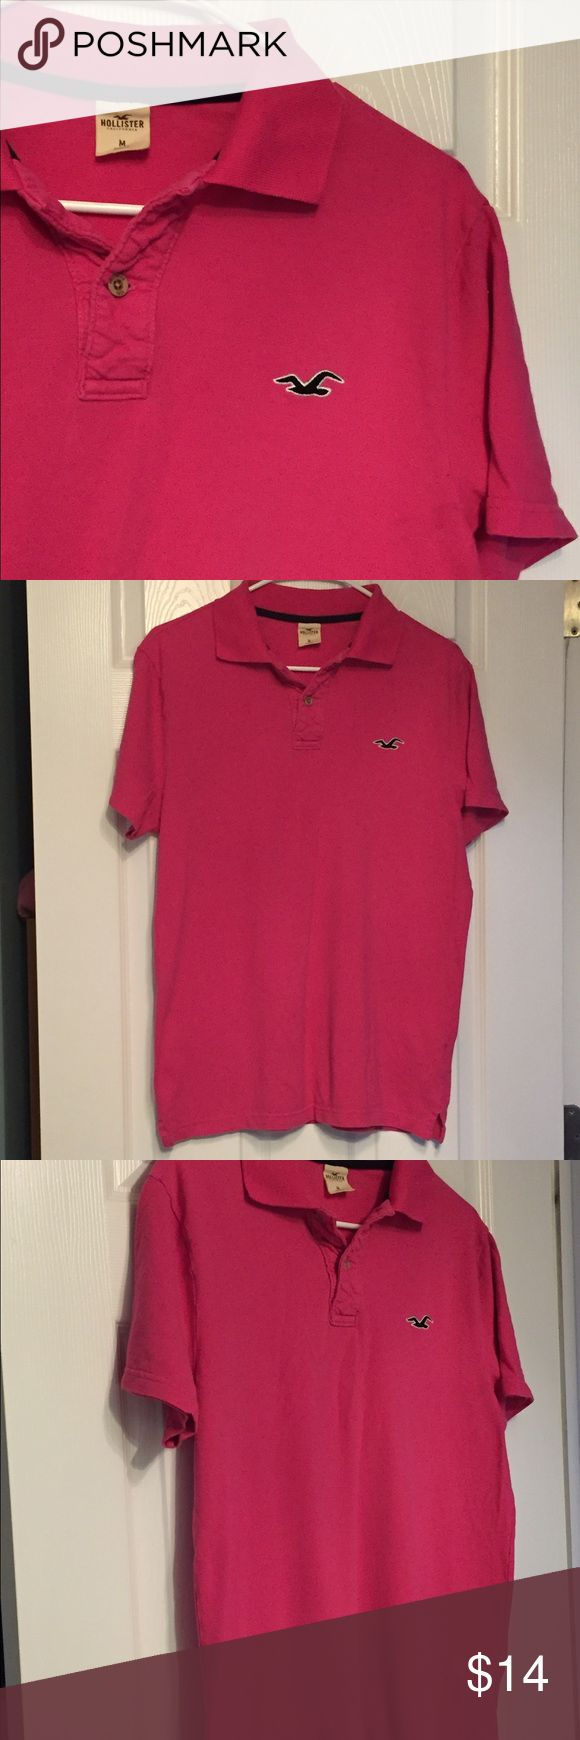 Dark pink polo shirt Hollister Men's size medium, dark pink Hollister polo shirt. Perfect condition. Hollister Shirts Polos